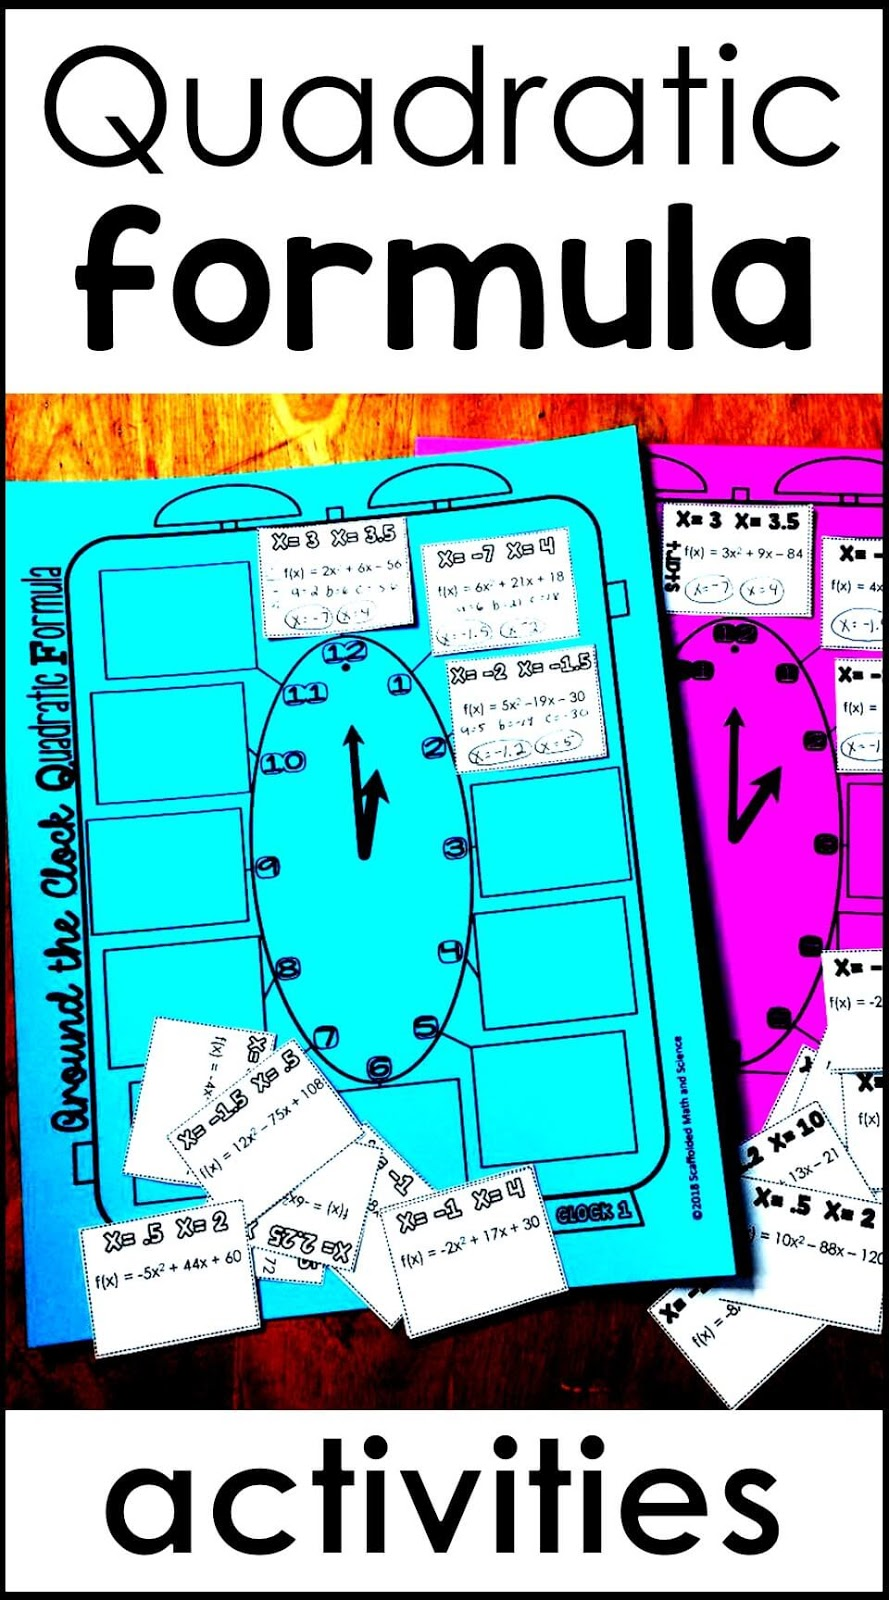 Scaffolded Math and Science: Fun Quadratic Formula Activities